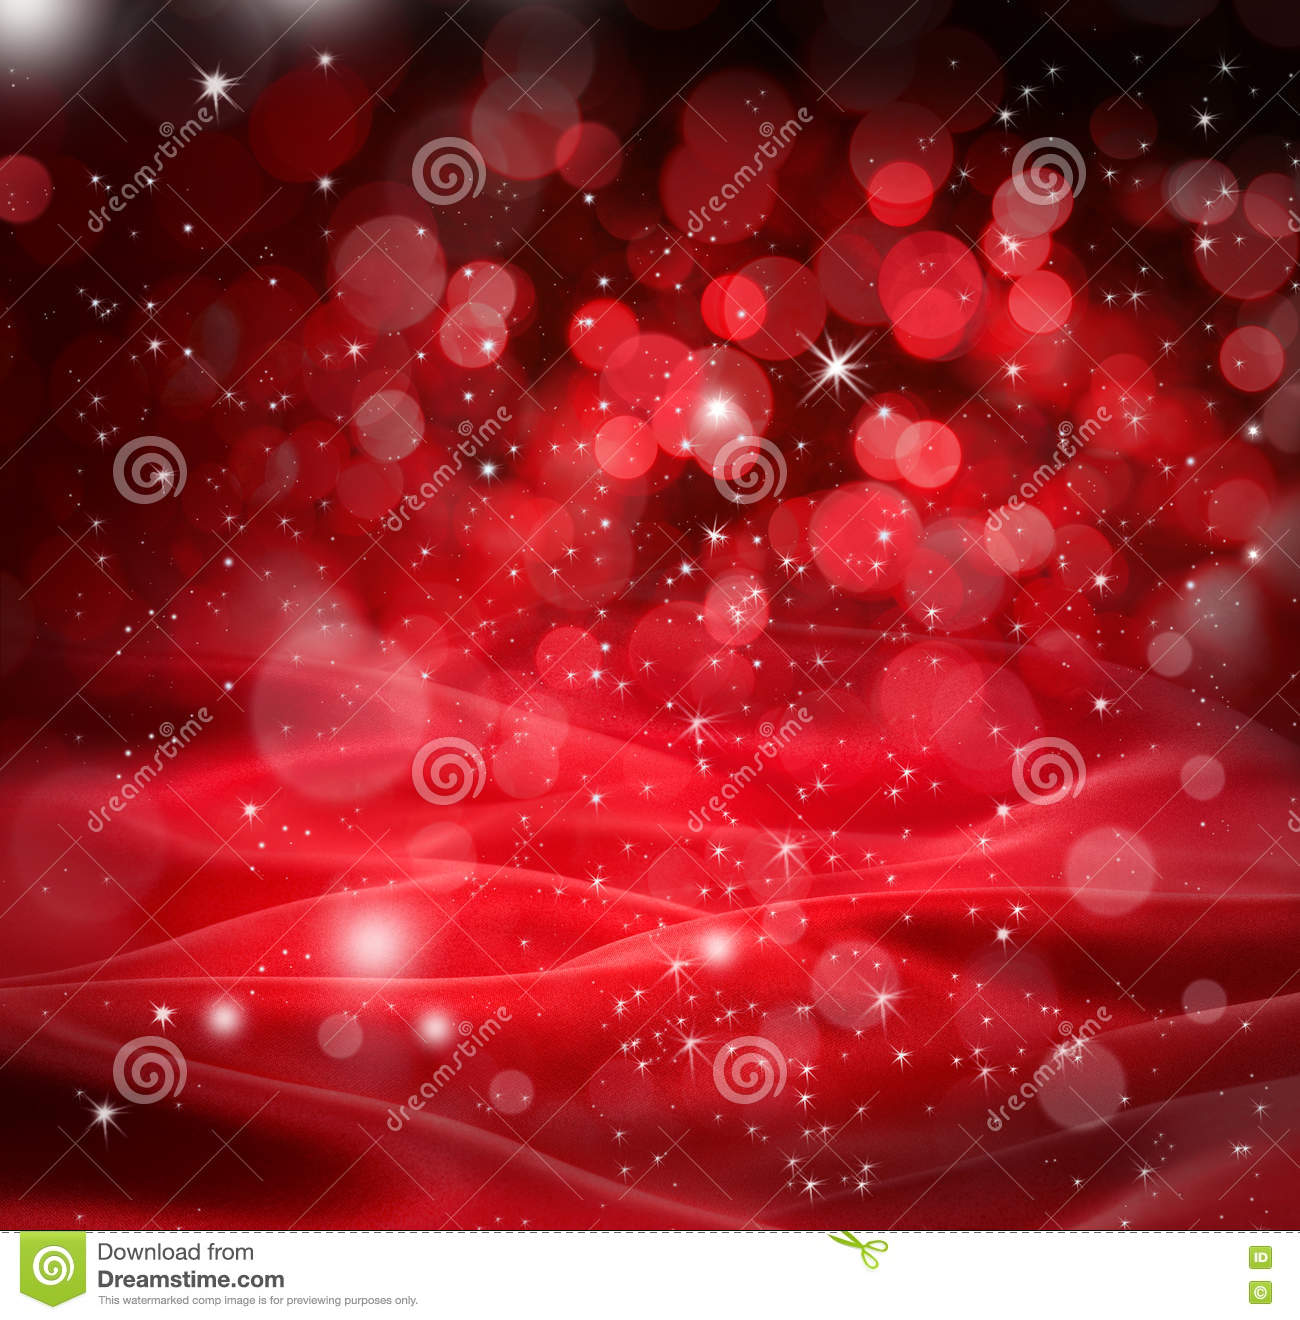 Background christmas red stars